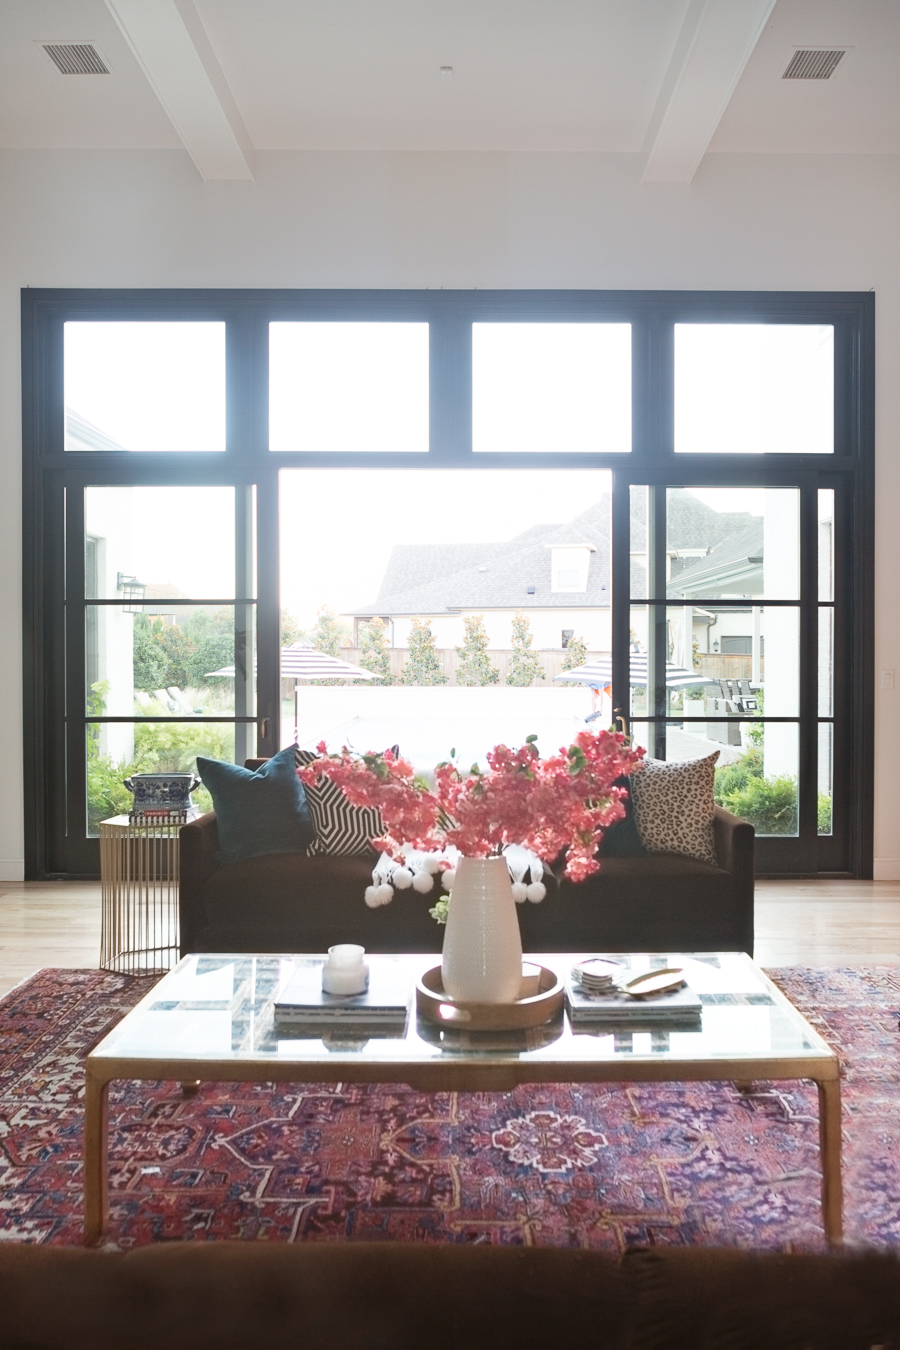 How to Find Black Windows and Doors for Less black windows and doors aluminum clad sliding doors white walls black window beautiful white home pink faux stems black and white graphic pillows leopard pillows gold coffee table pink stems